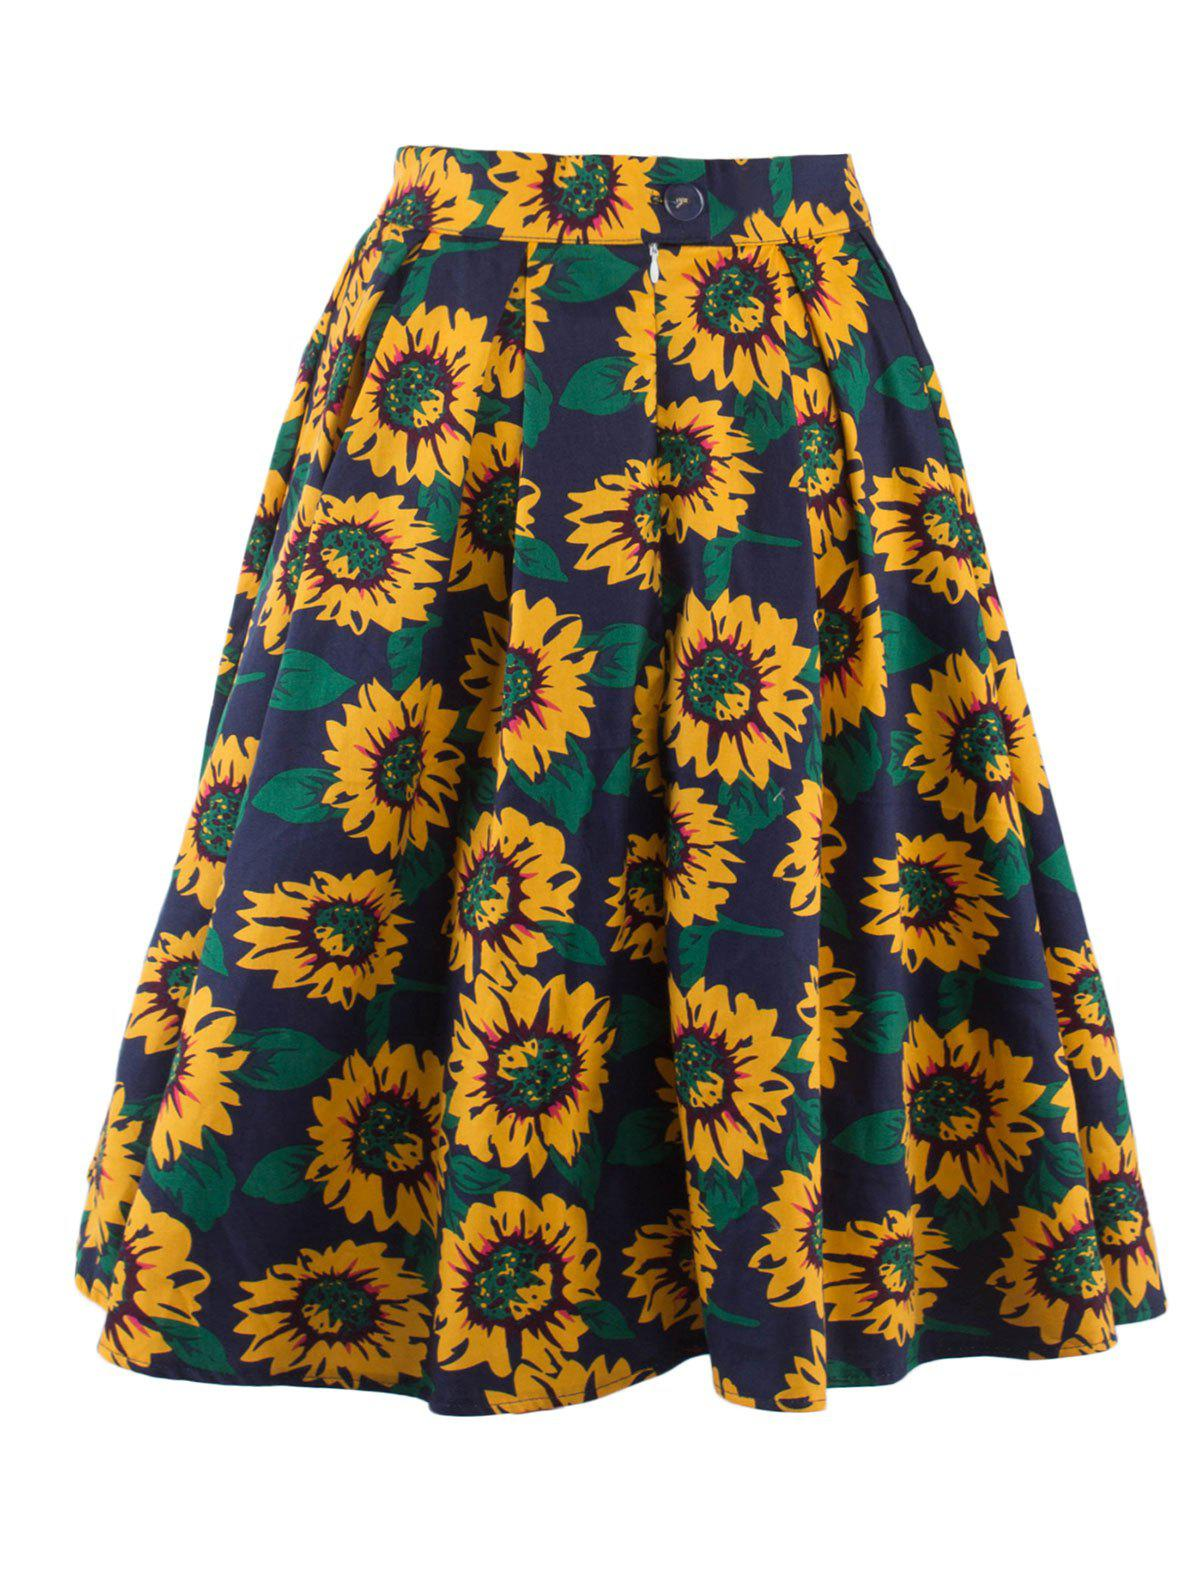 Shop Sunflower Print A Line Skirt